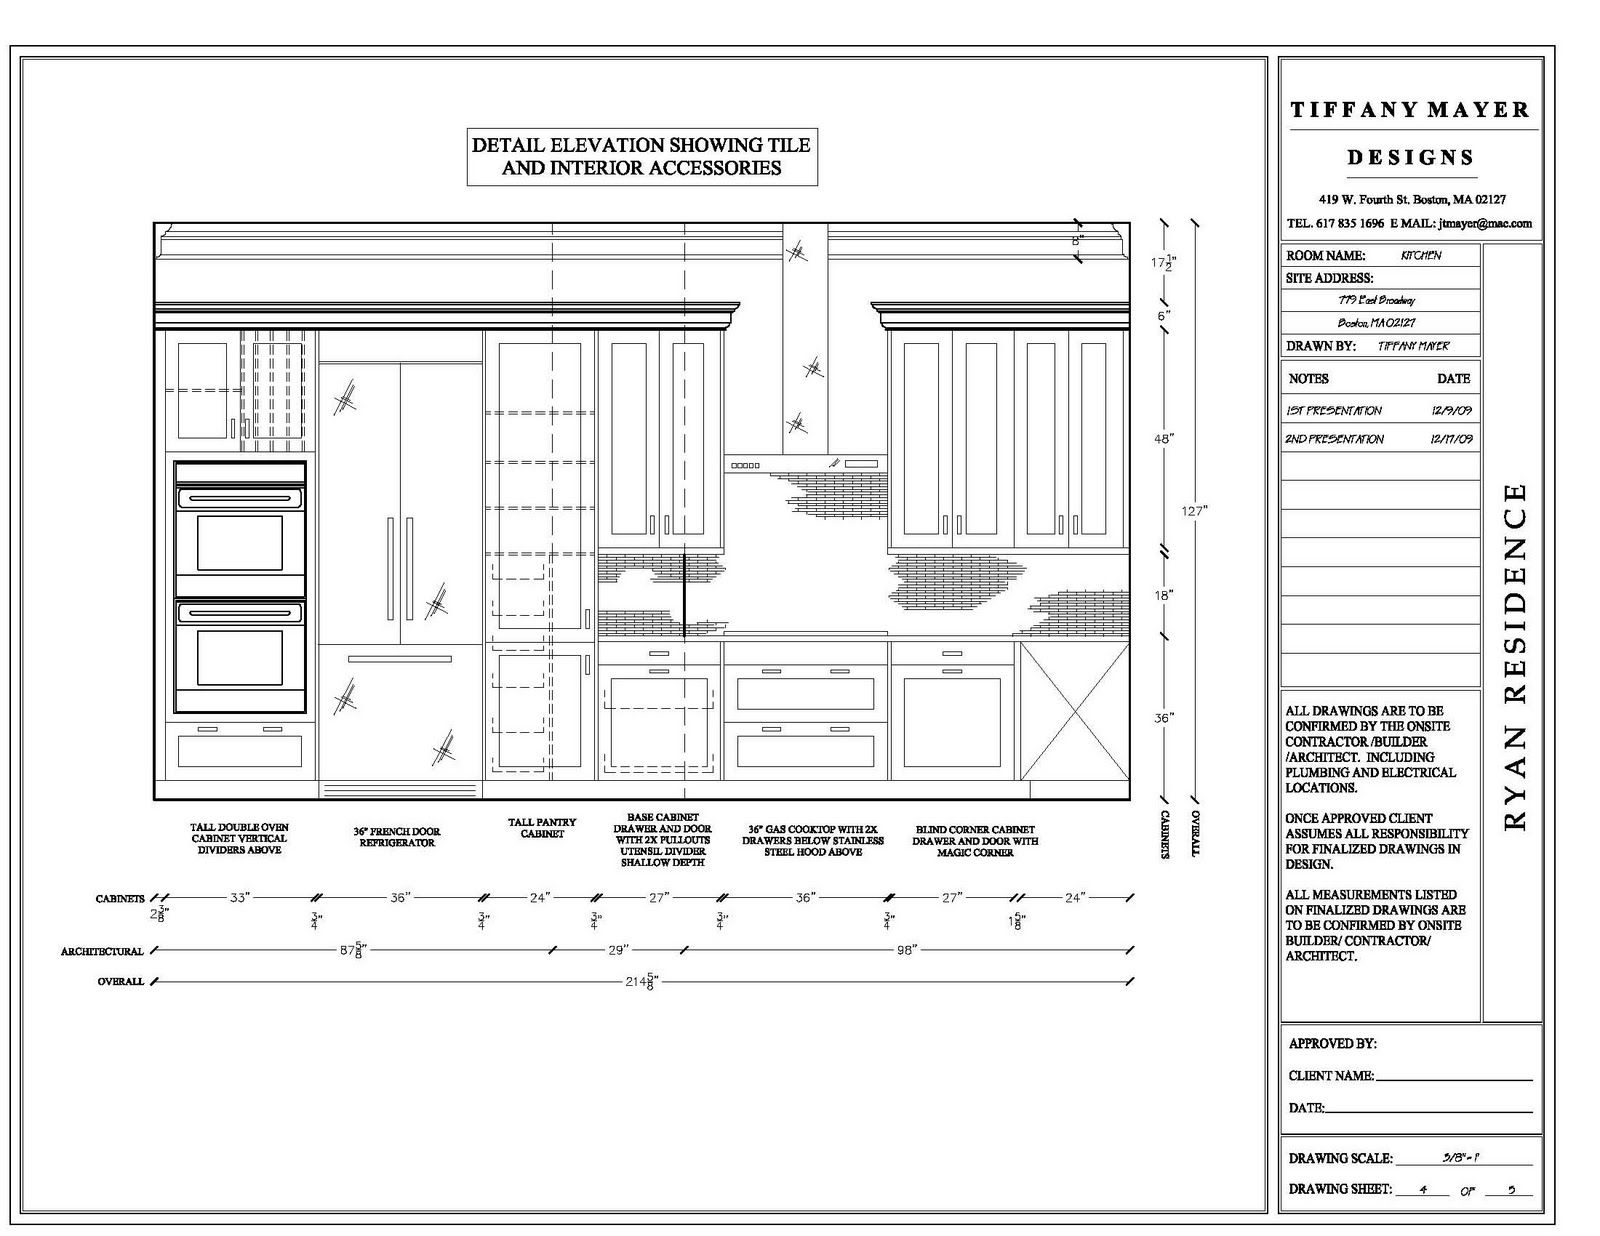 Elevation Drawings Cabinet Detail Drawing Size Interior Design Elevation Drawings Interior